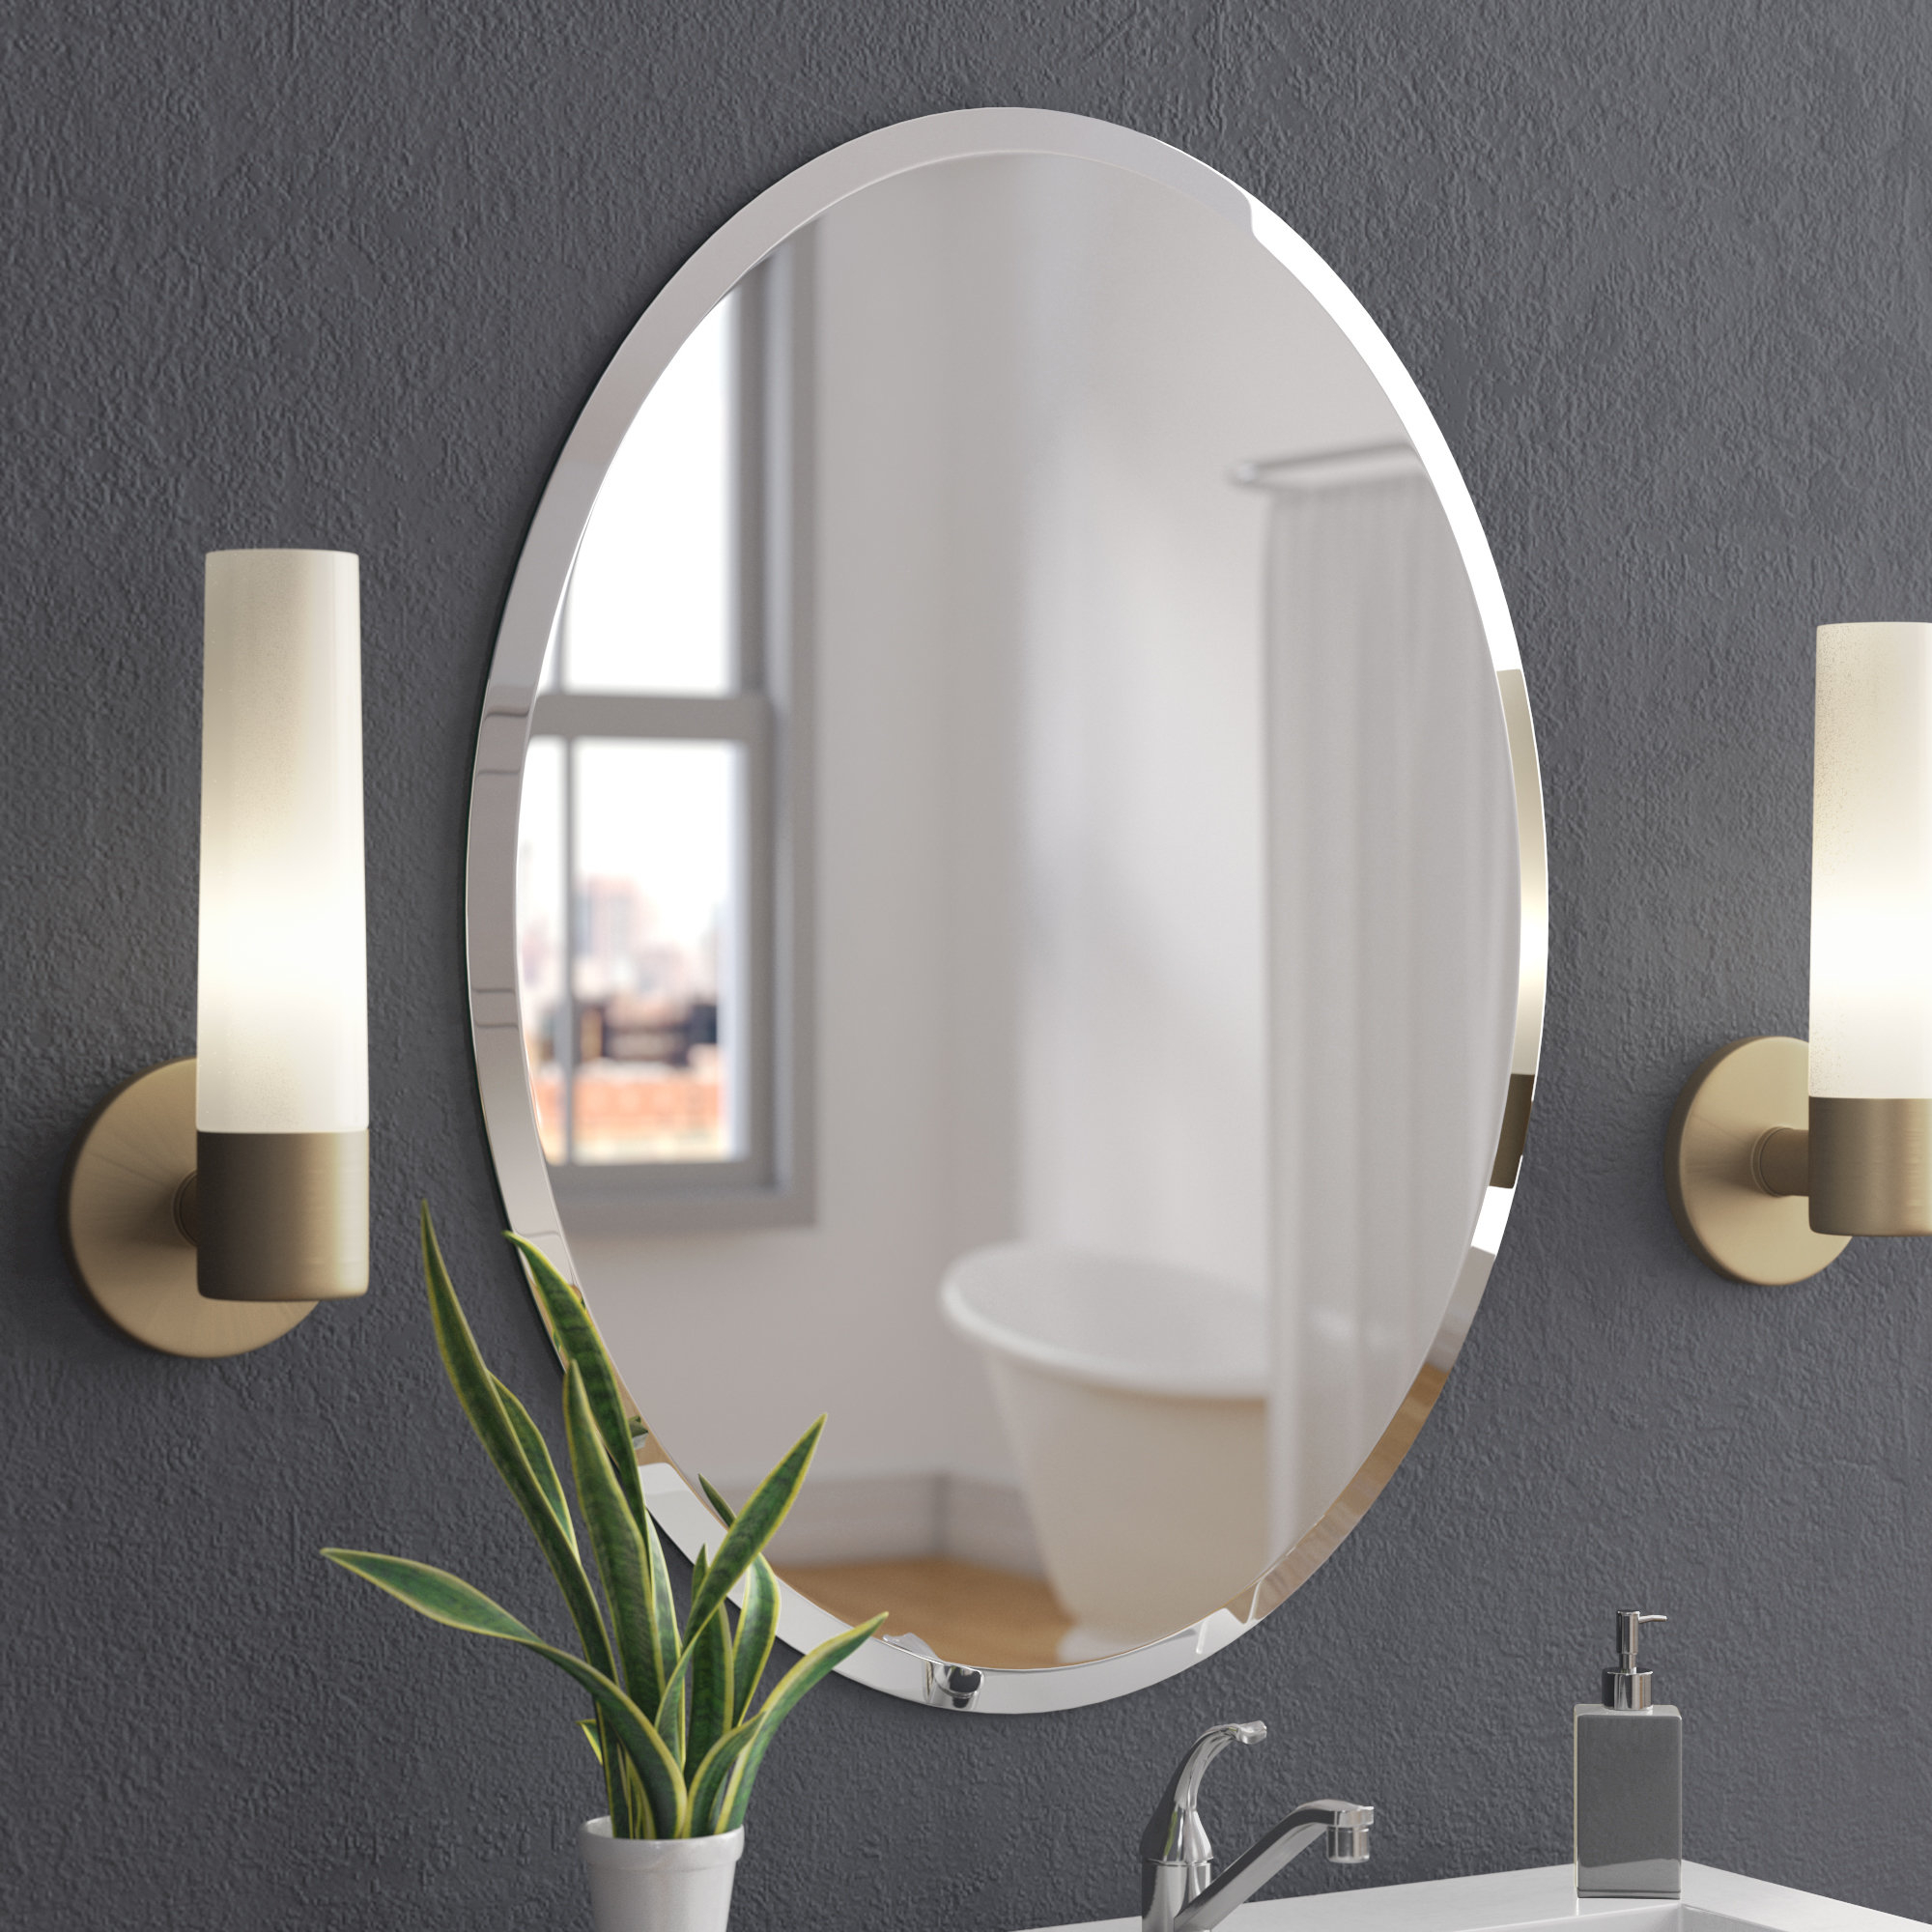 Etched Frameless Wall Mirror | Wayfair Within Estefania Frameless Wall Mirrors (View 6 of 20)